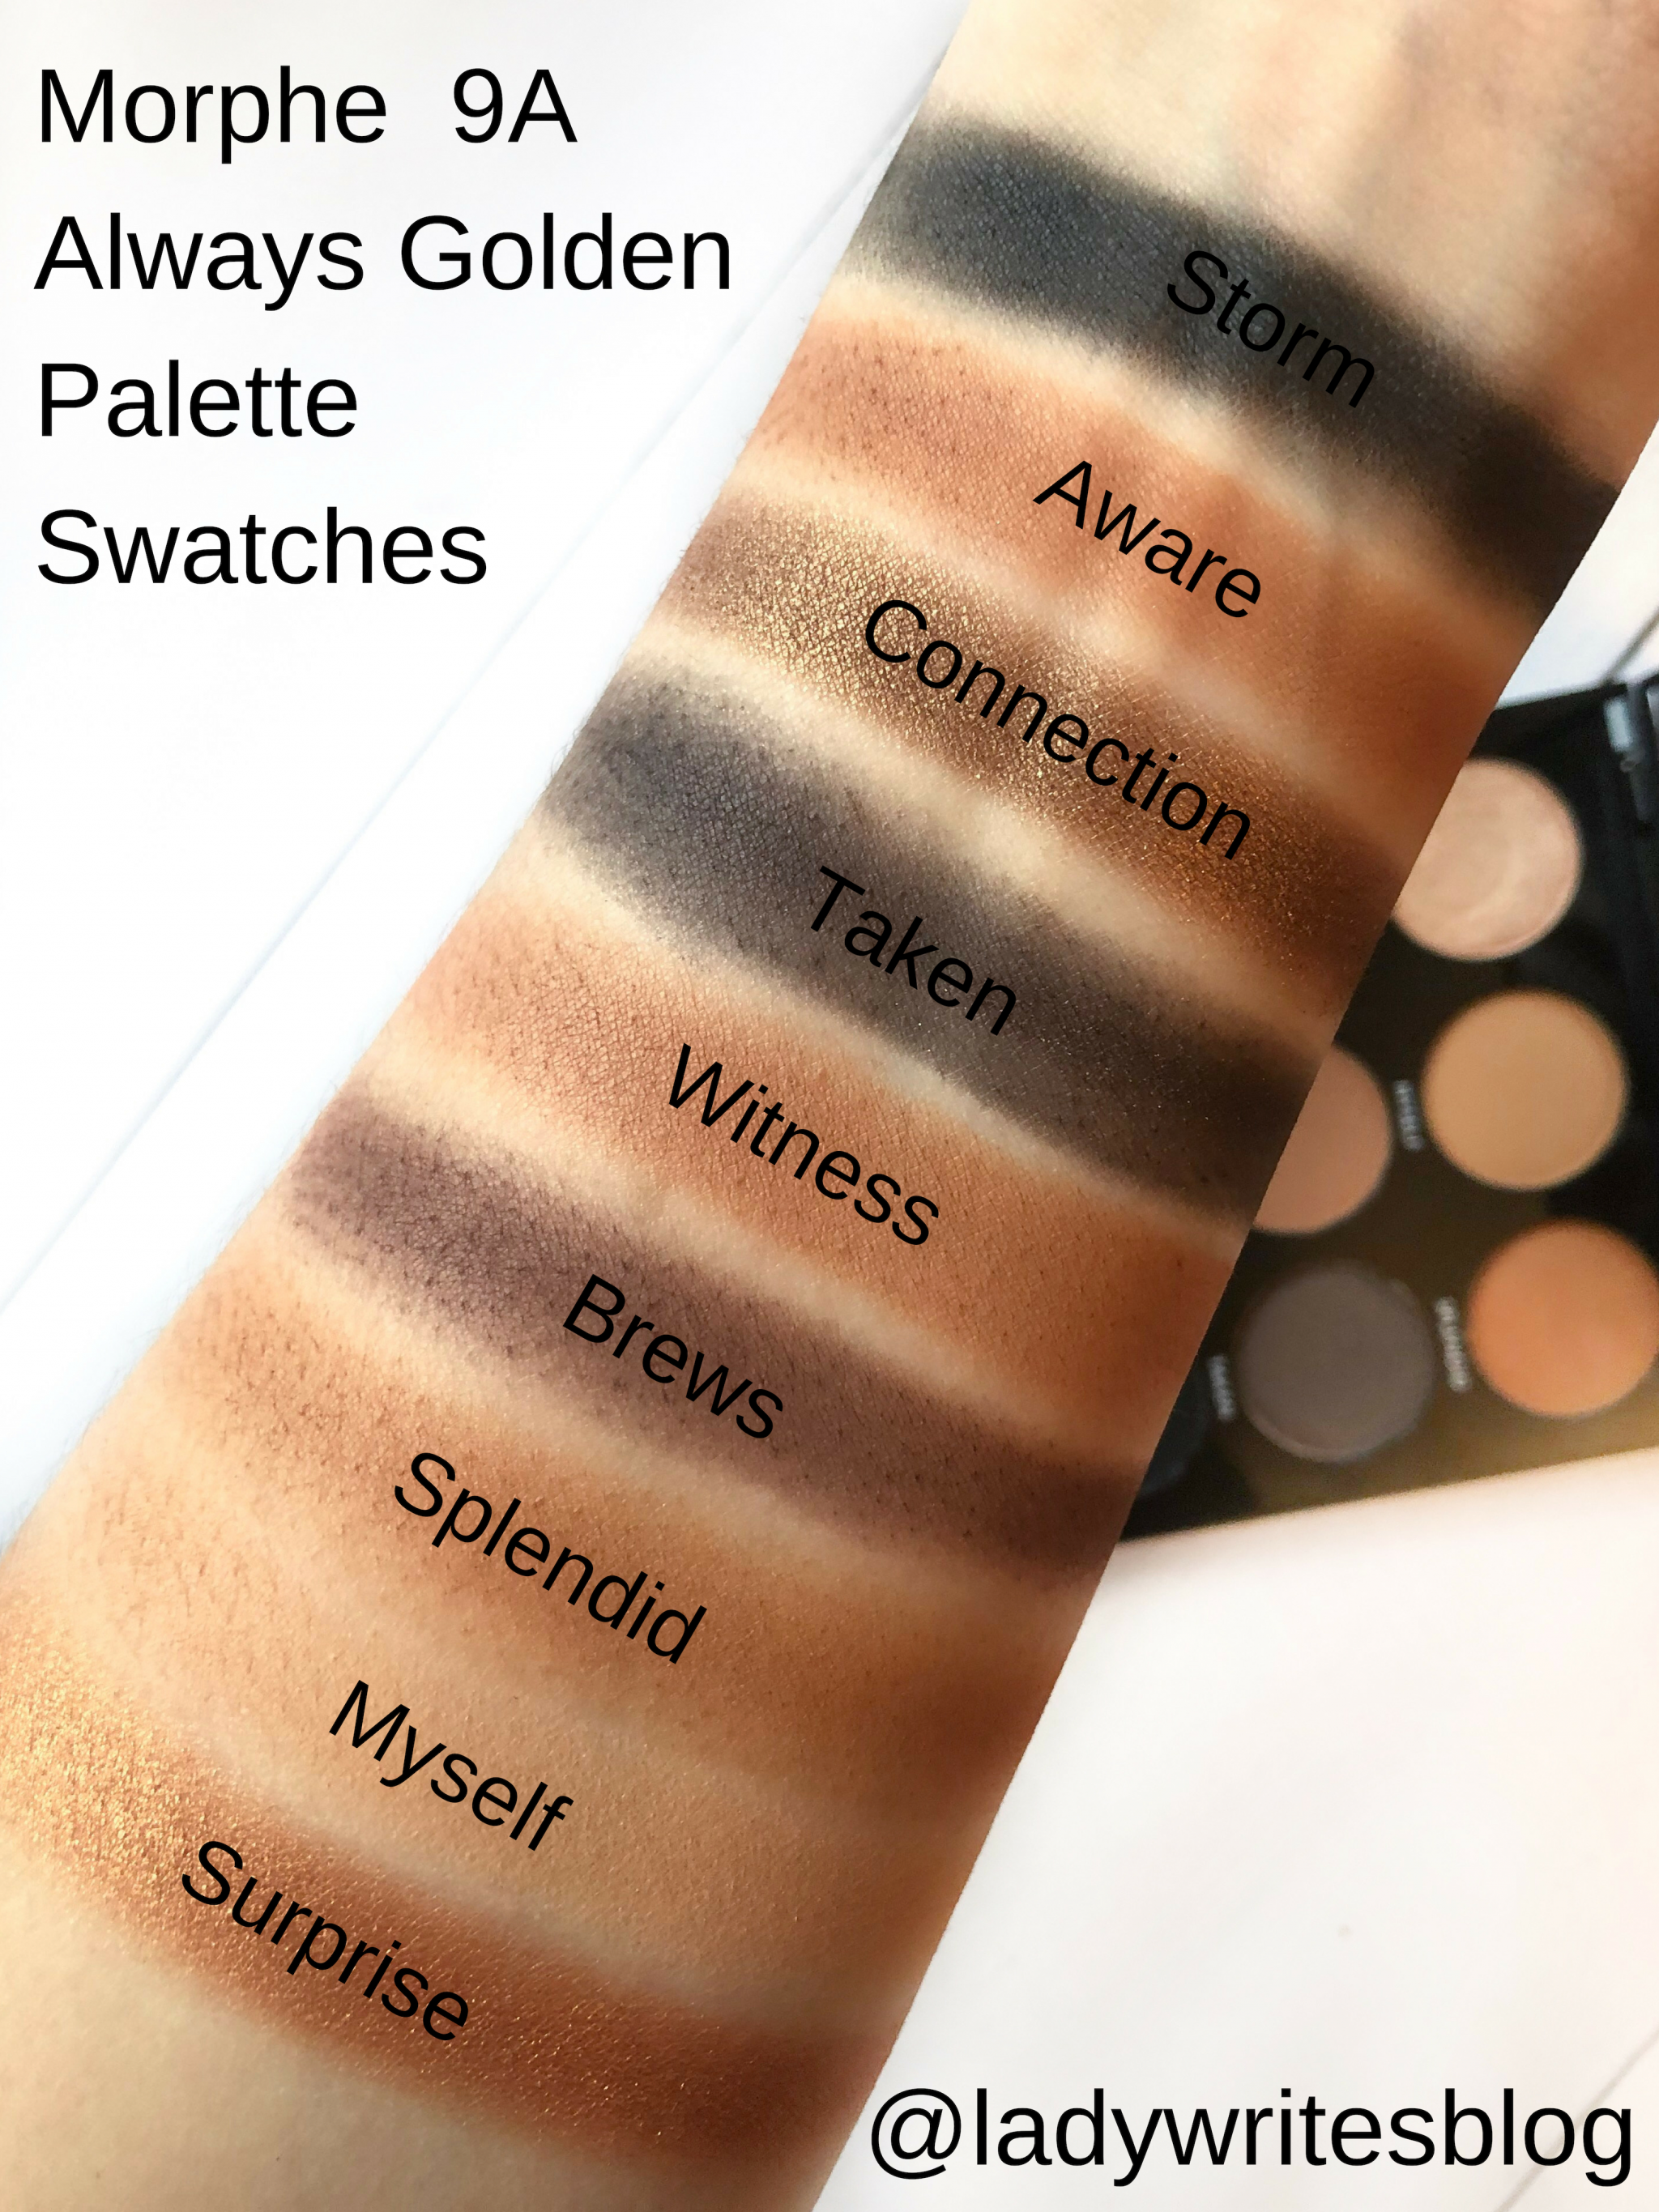 Morphe 9A Always Golden Palette Swatches